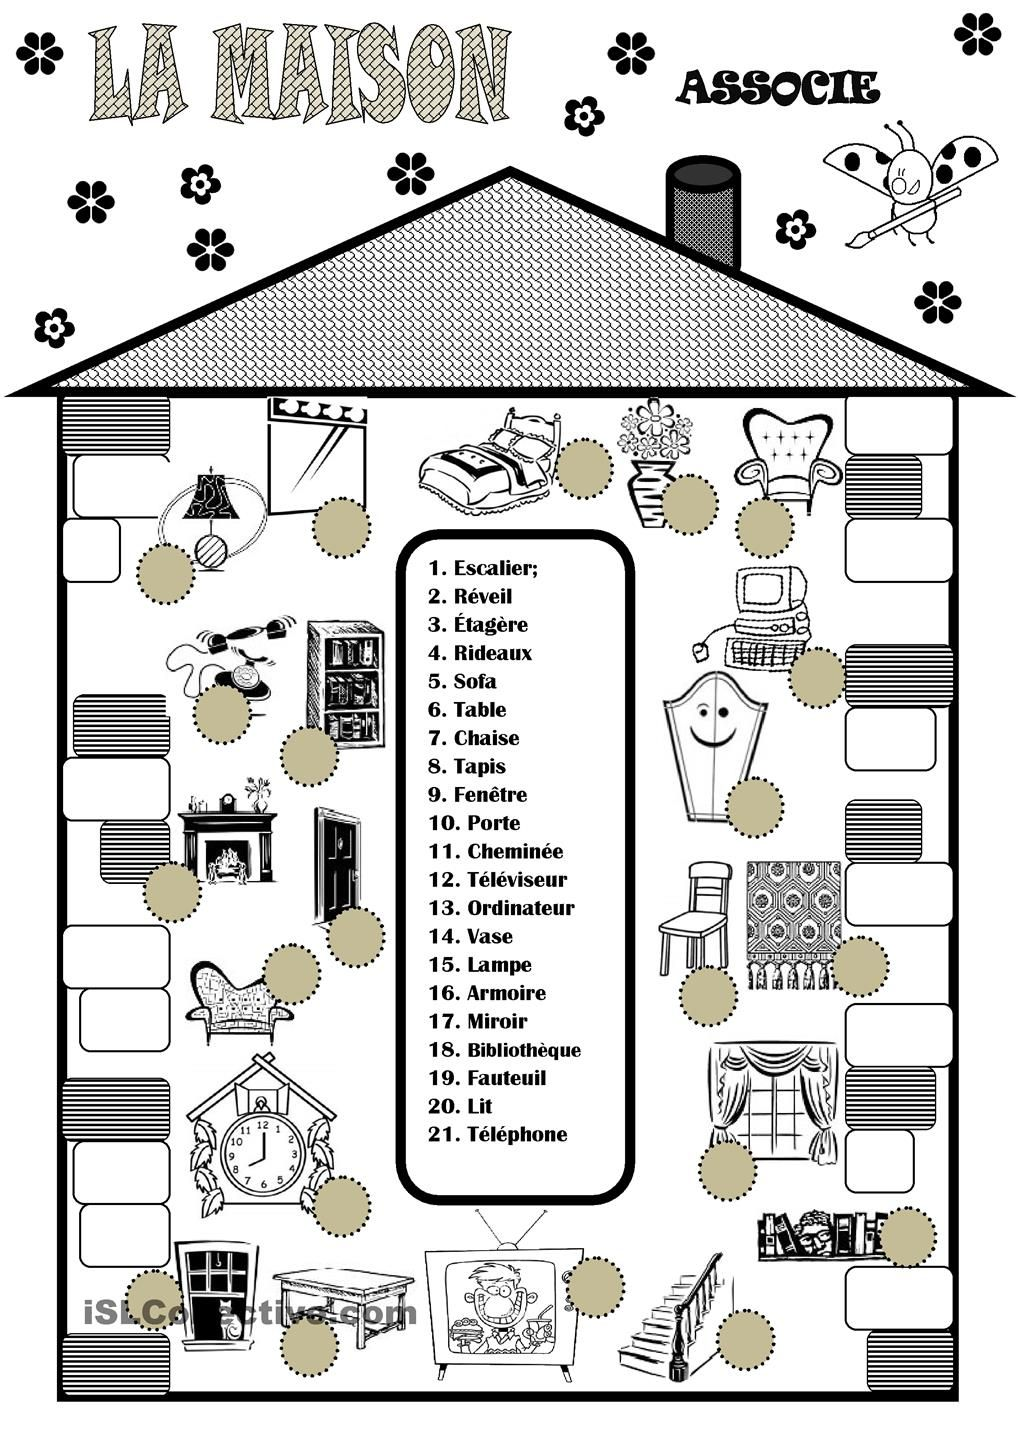 La maison la casa pinterest la maison vocabulaire for Chambre a coucher vocabulaire